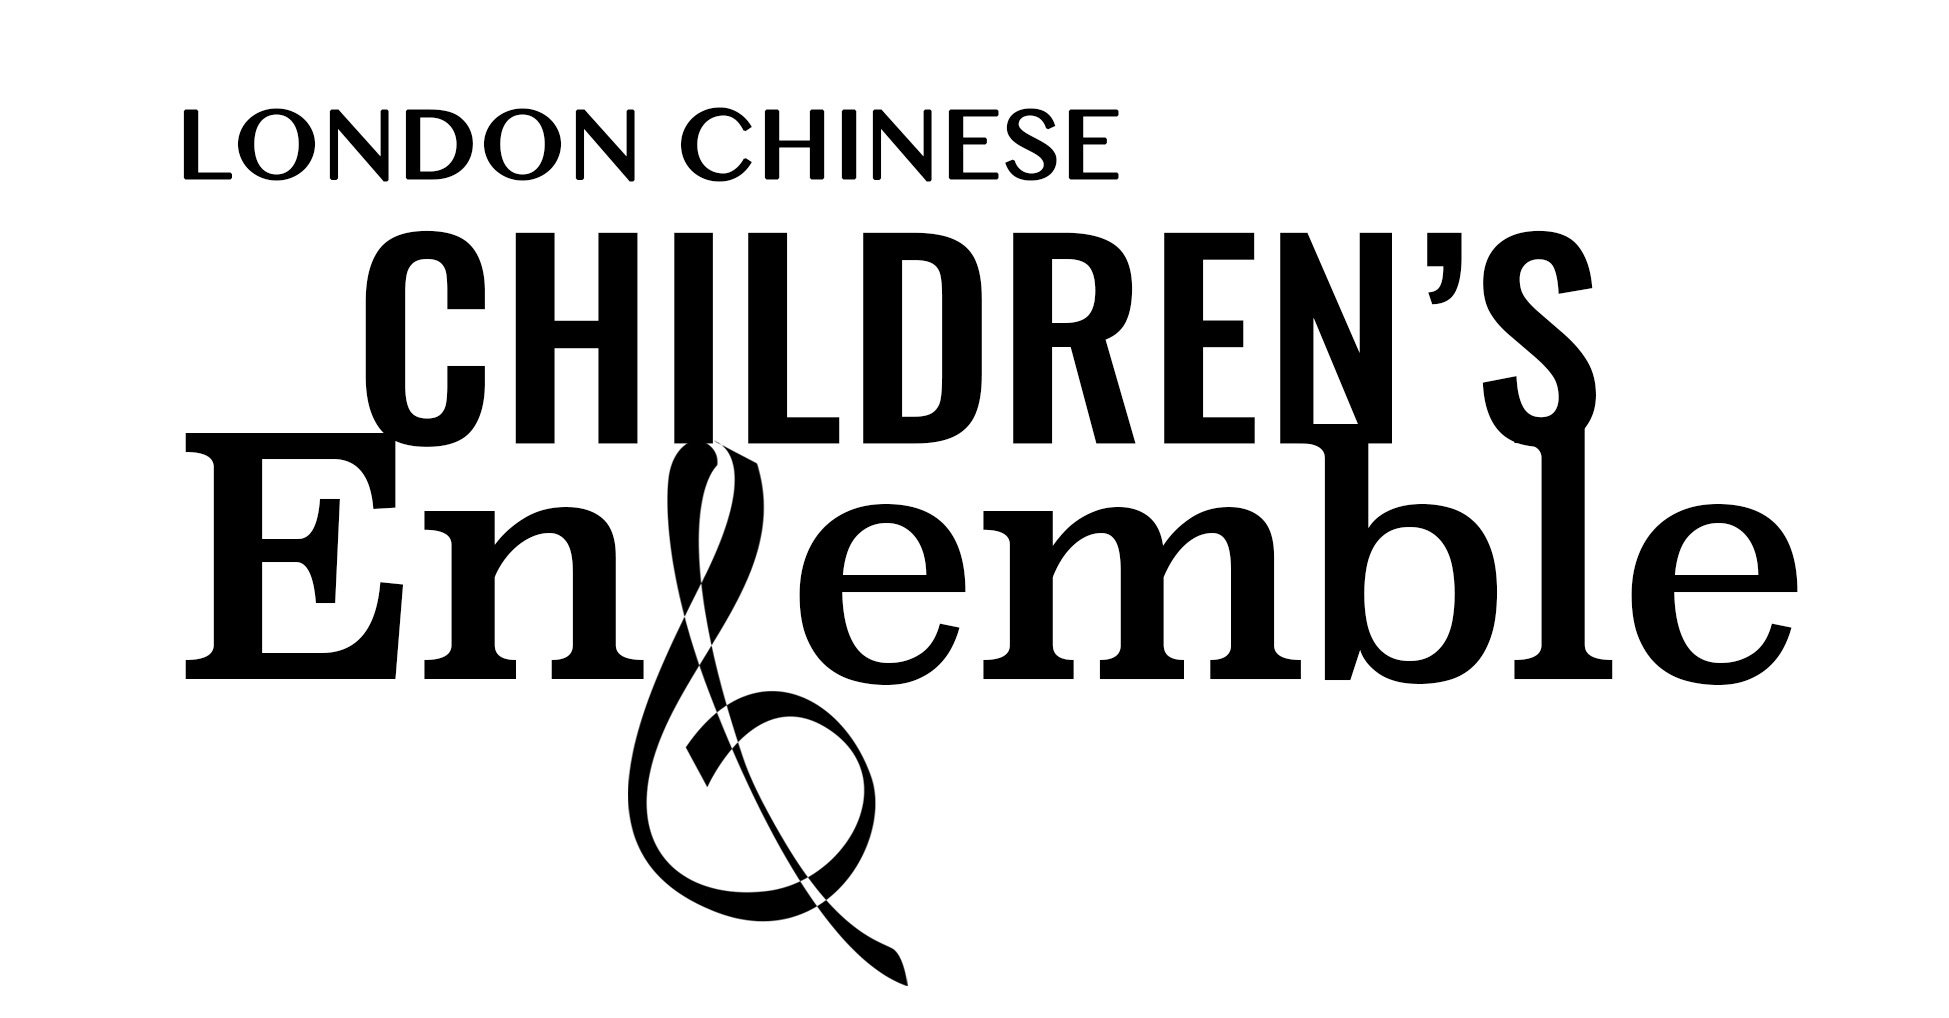 The logo of London Chinese Children's Ensemble